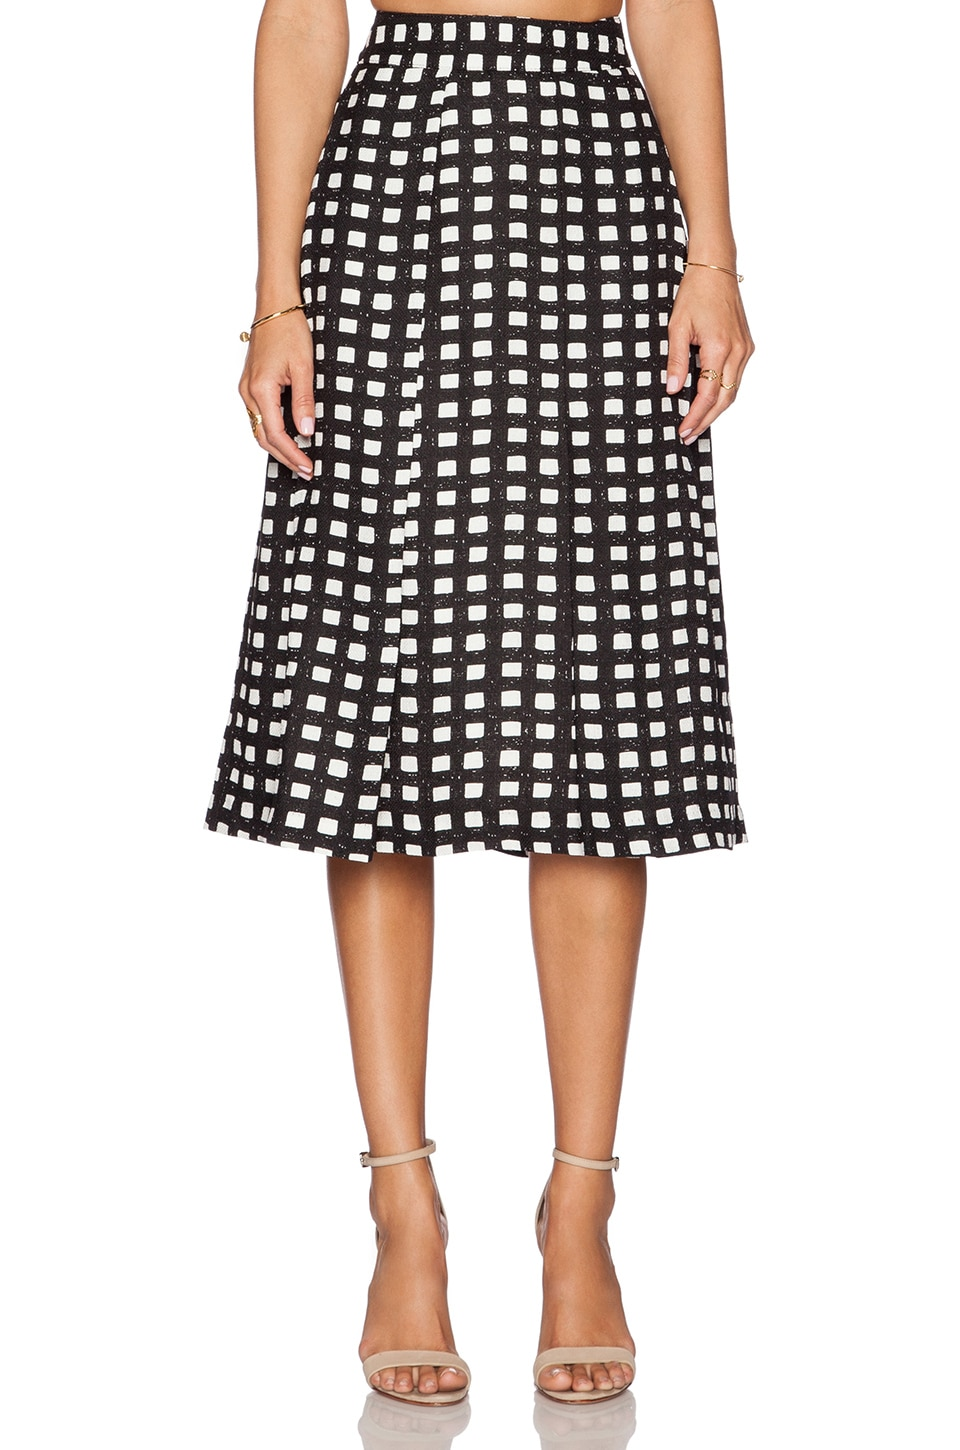 J.O.A. Gingham Midi Skirt in Black & White